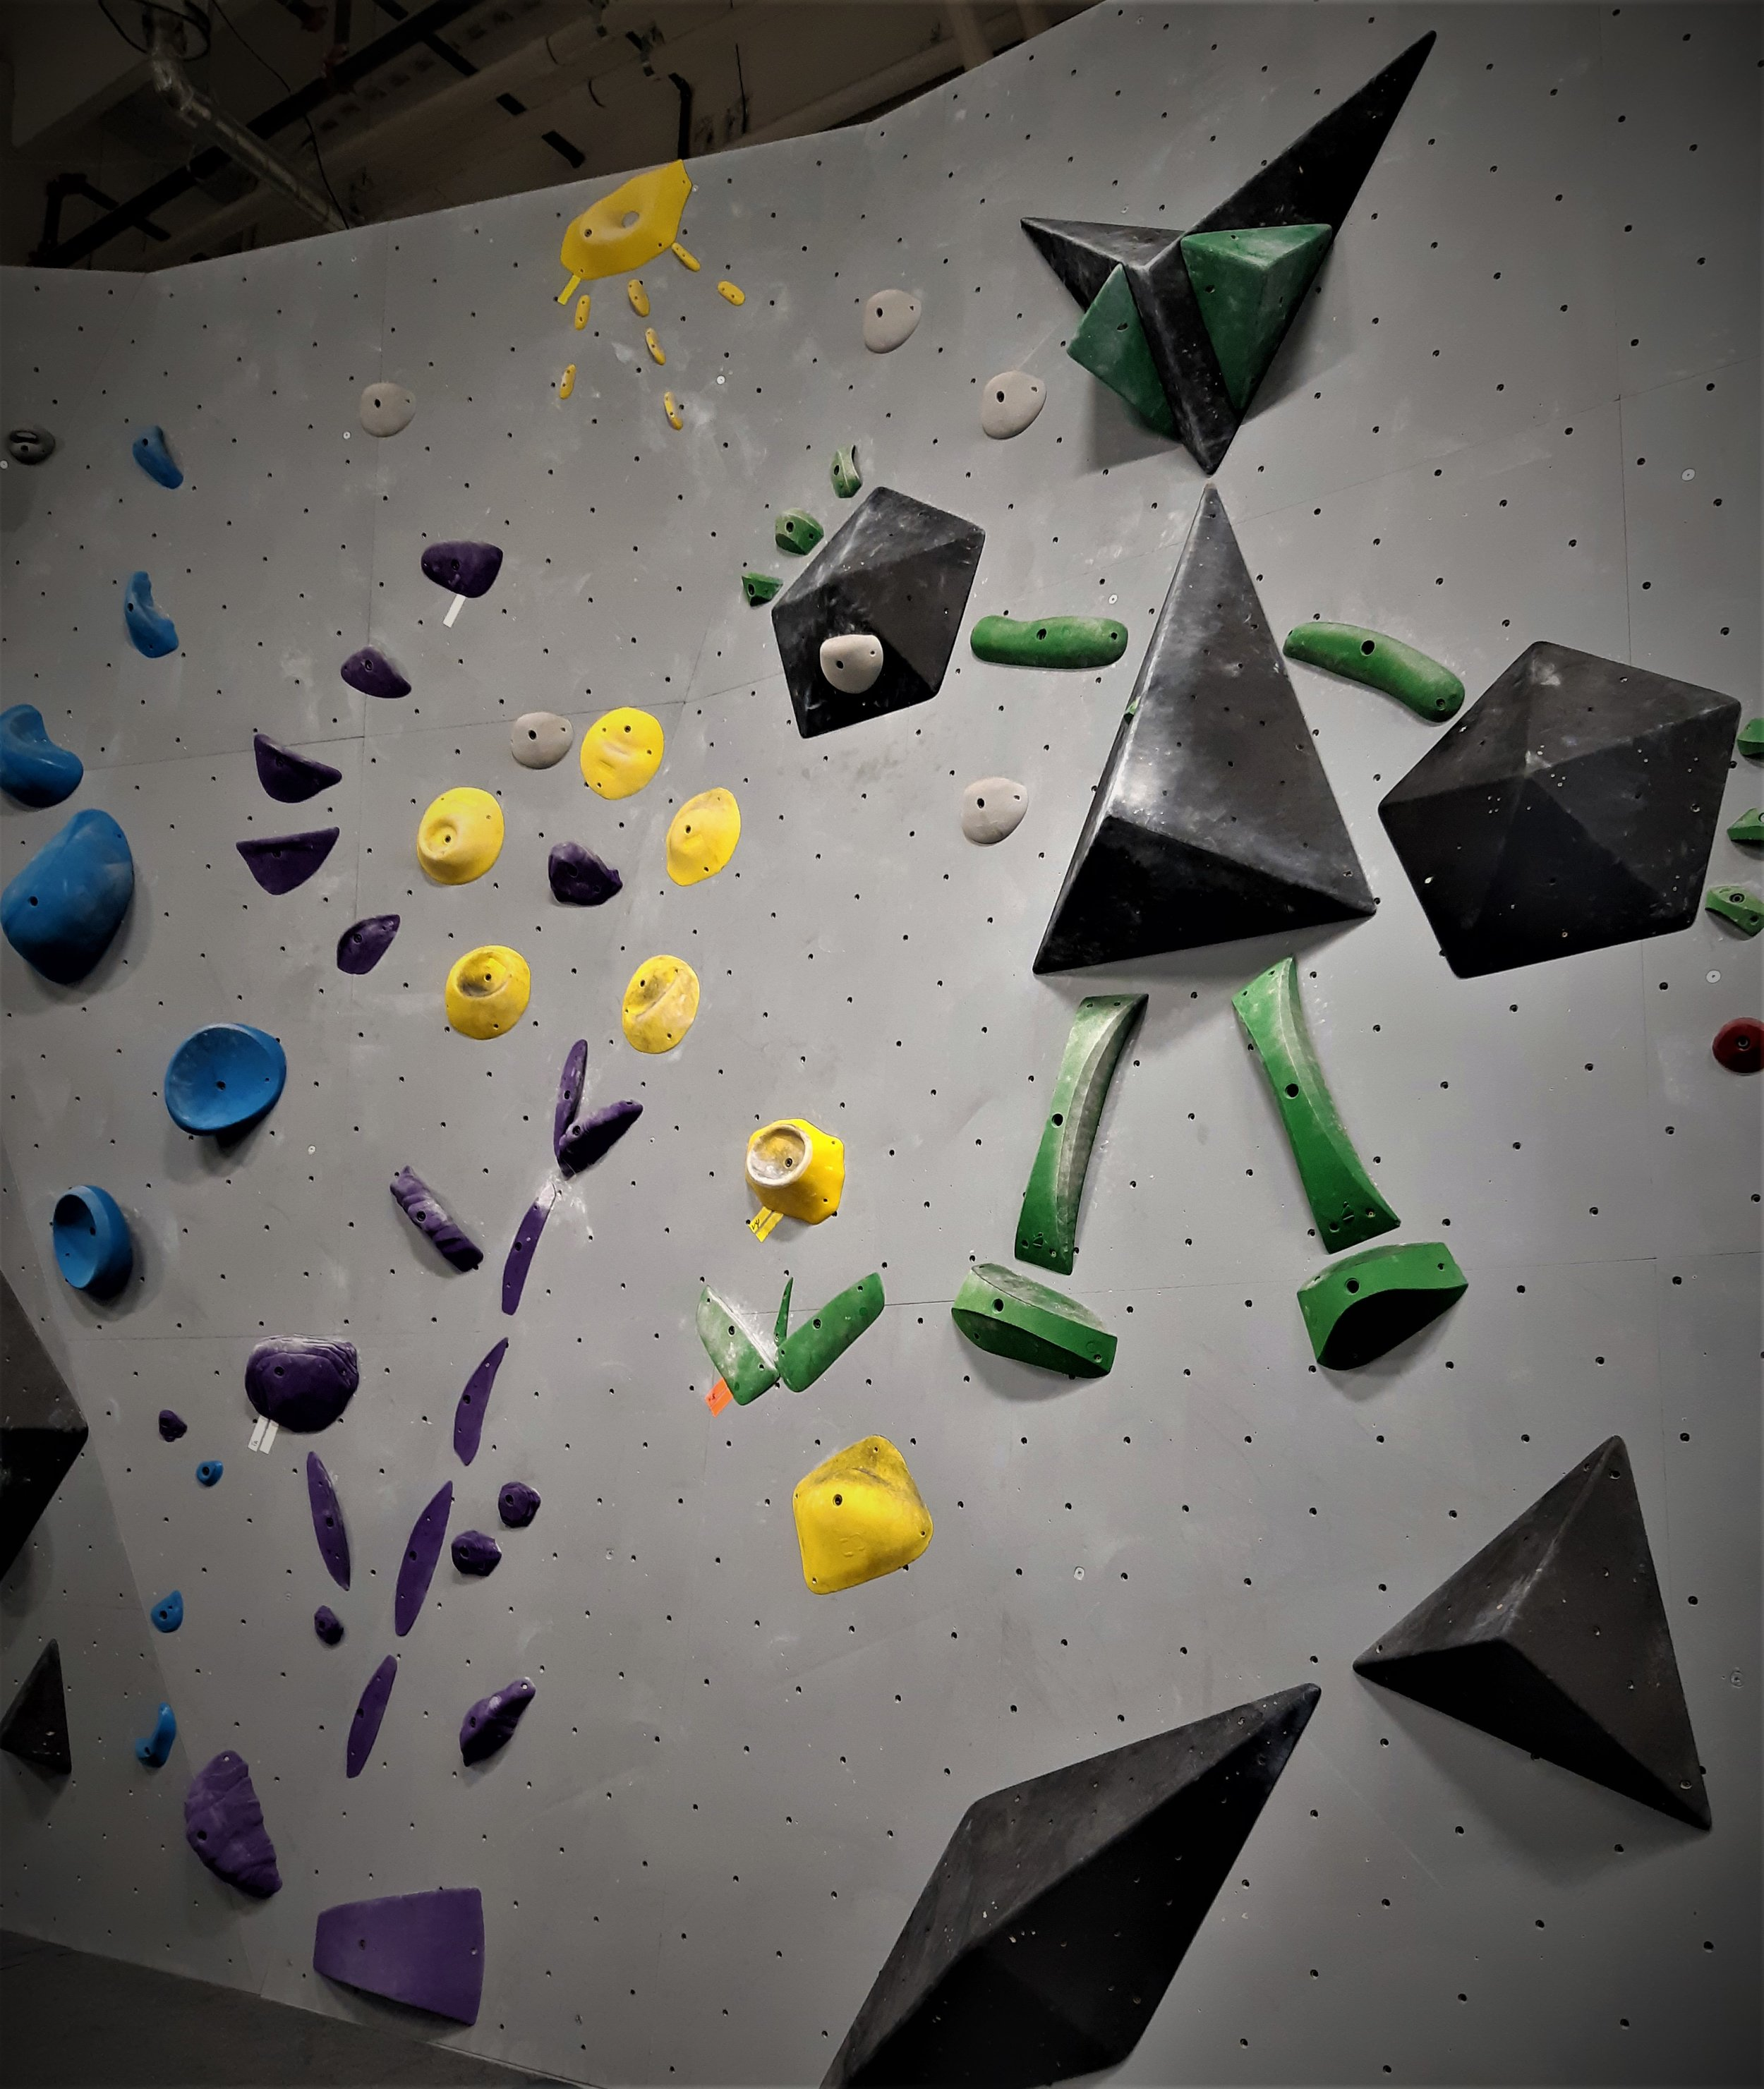 BLOCS is an Edmonton-based boulder gym founded on a passion for climbing with a goal to grow and give back to its community.